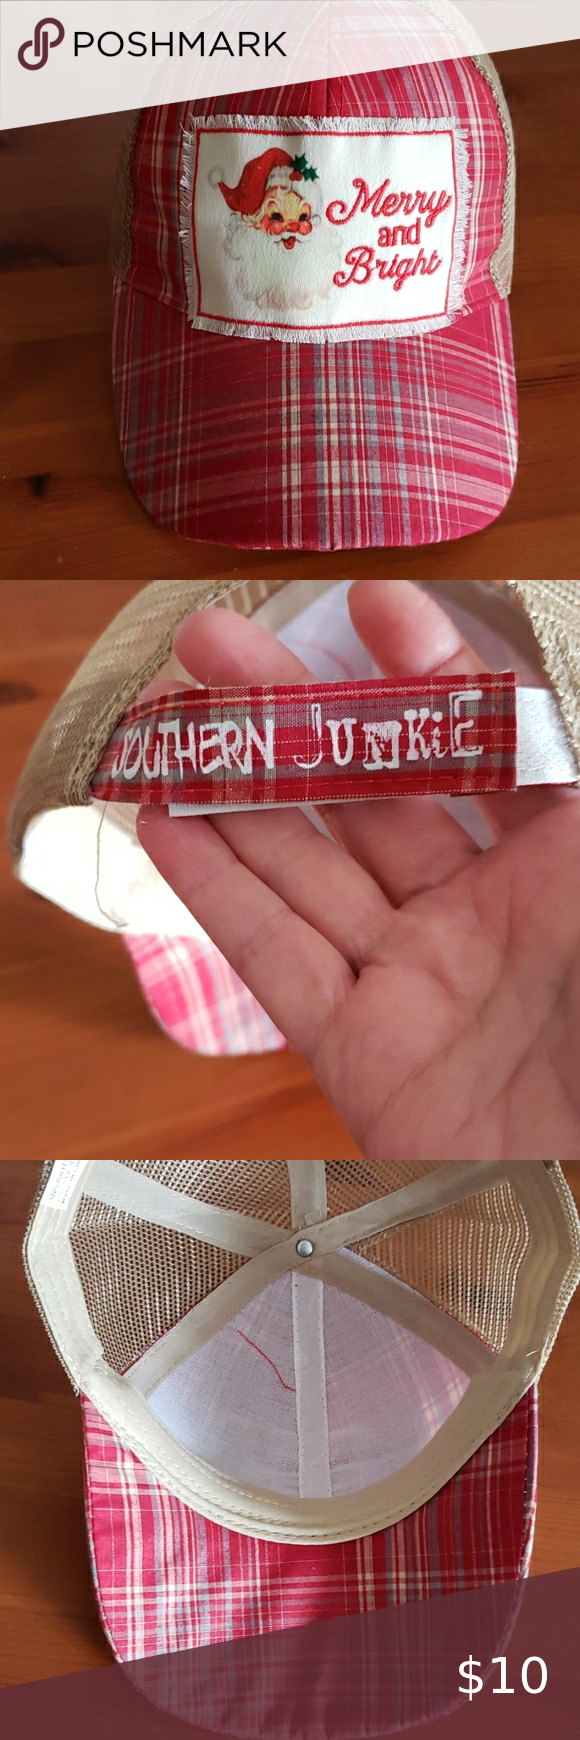 Nwot Southern Junkie In 2020 Nwot Women Accessories Hats Things To Sell